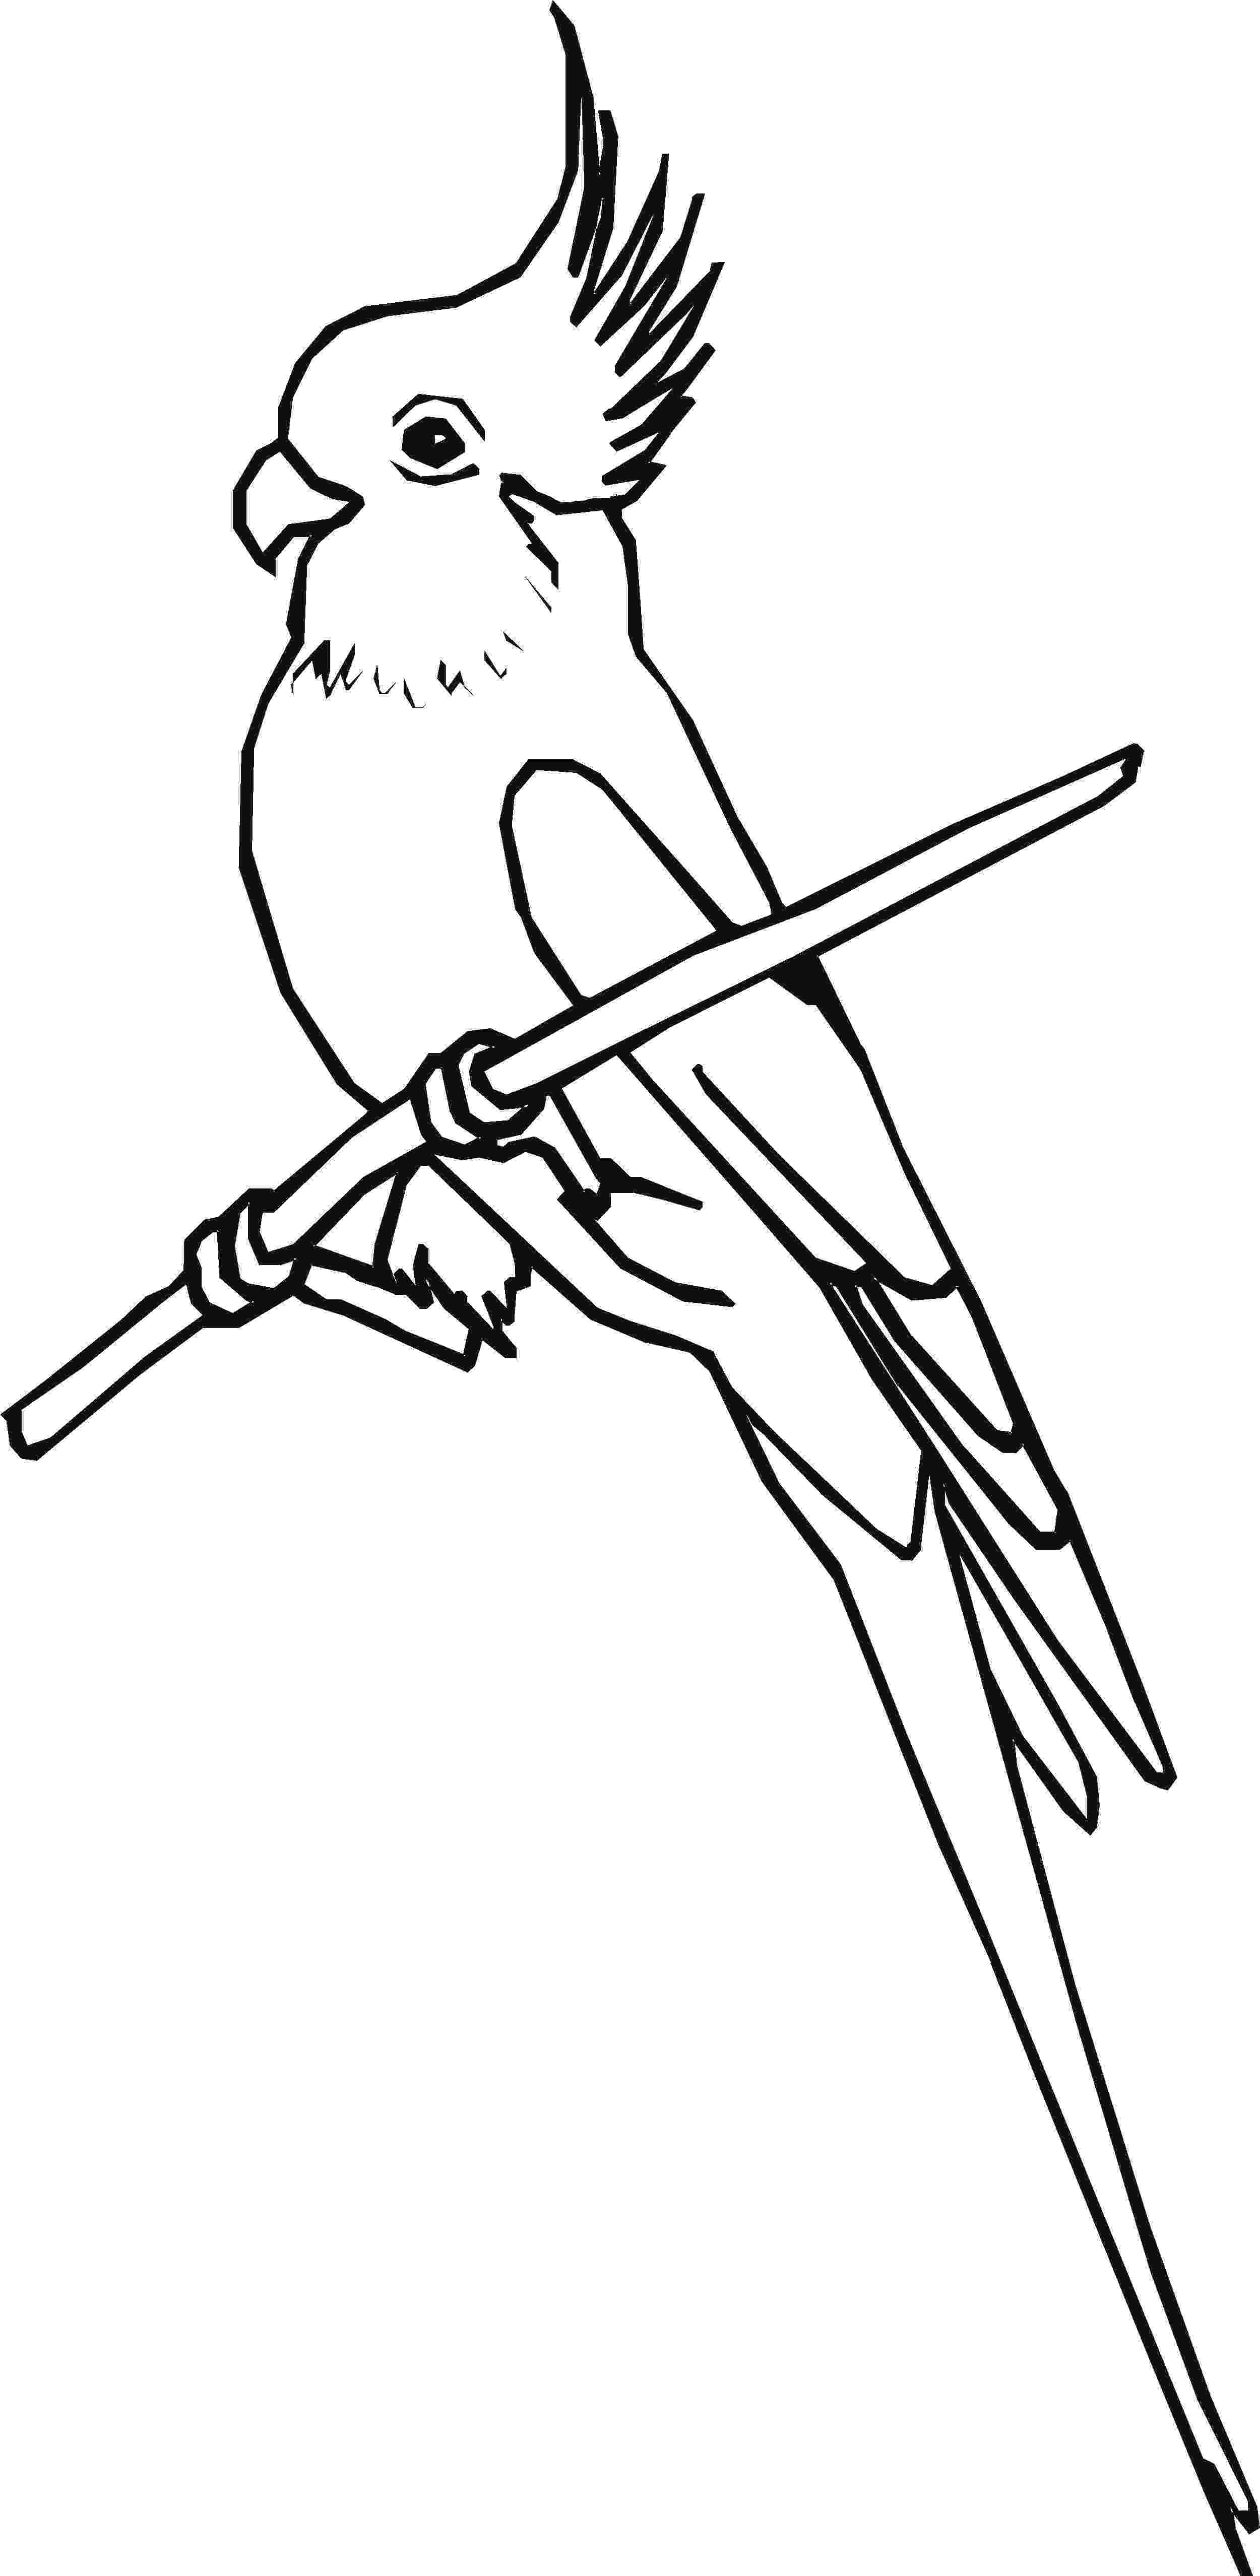 cockatiel coloring pages animal coloring pages children39s best activities coloring cockatiel pages